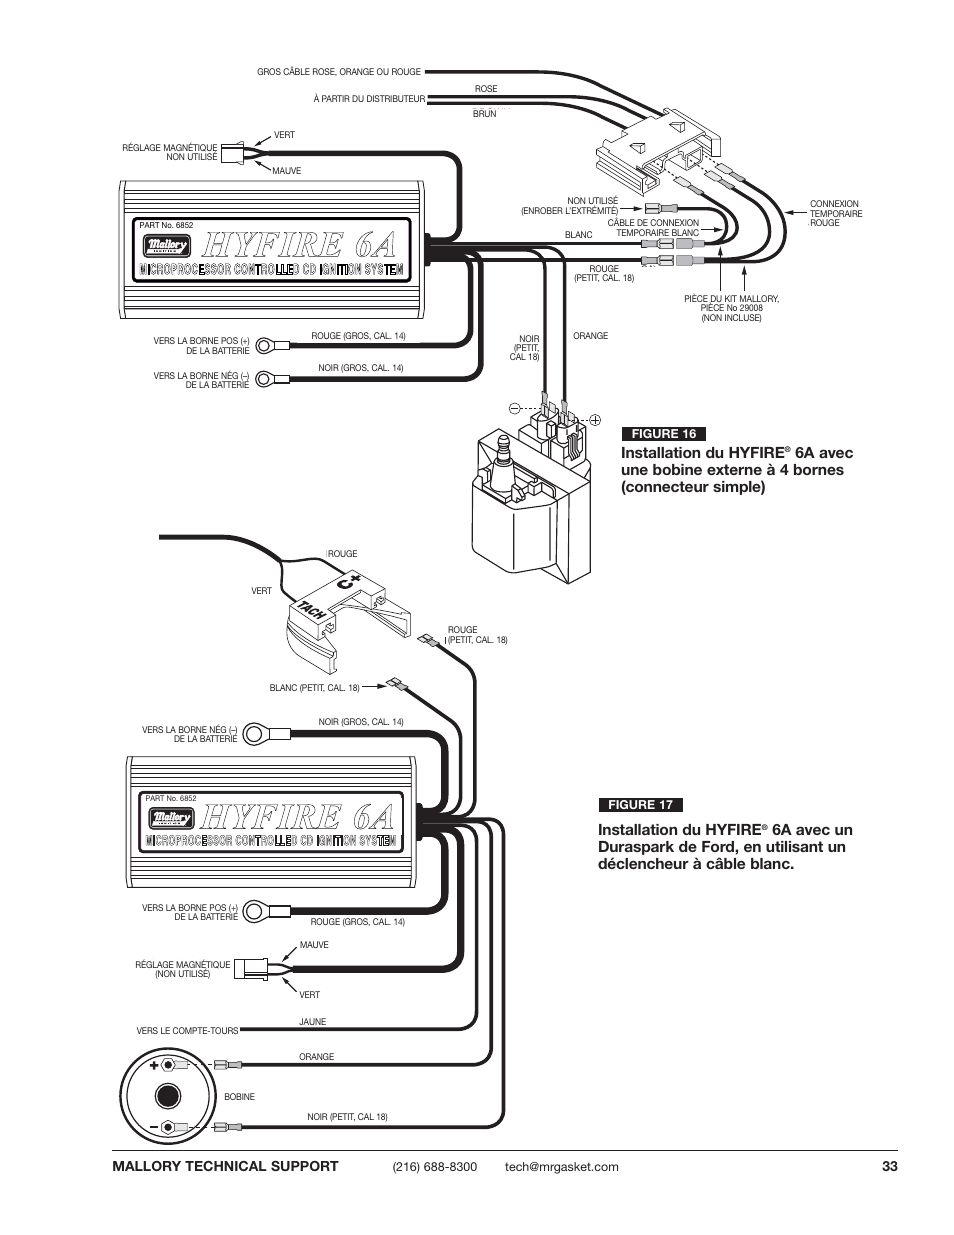 Mallory Yl Wiring Diagrams | Wiring Liry on